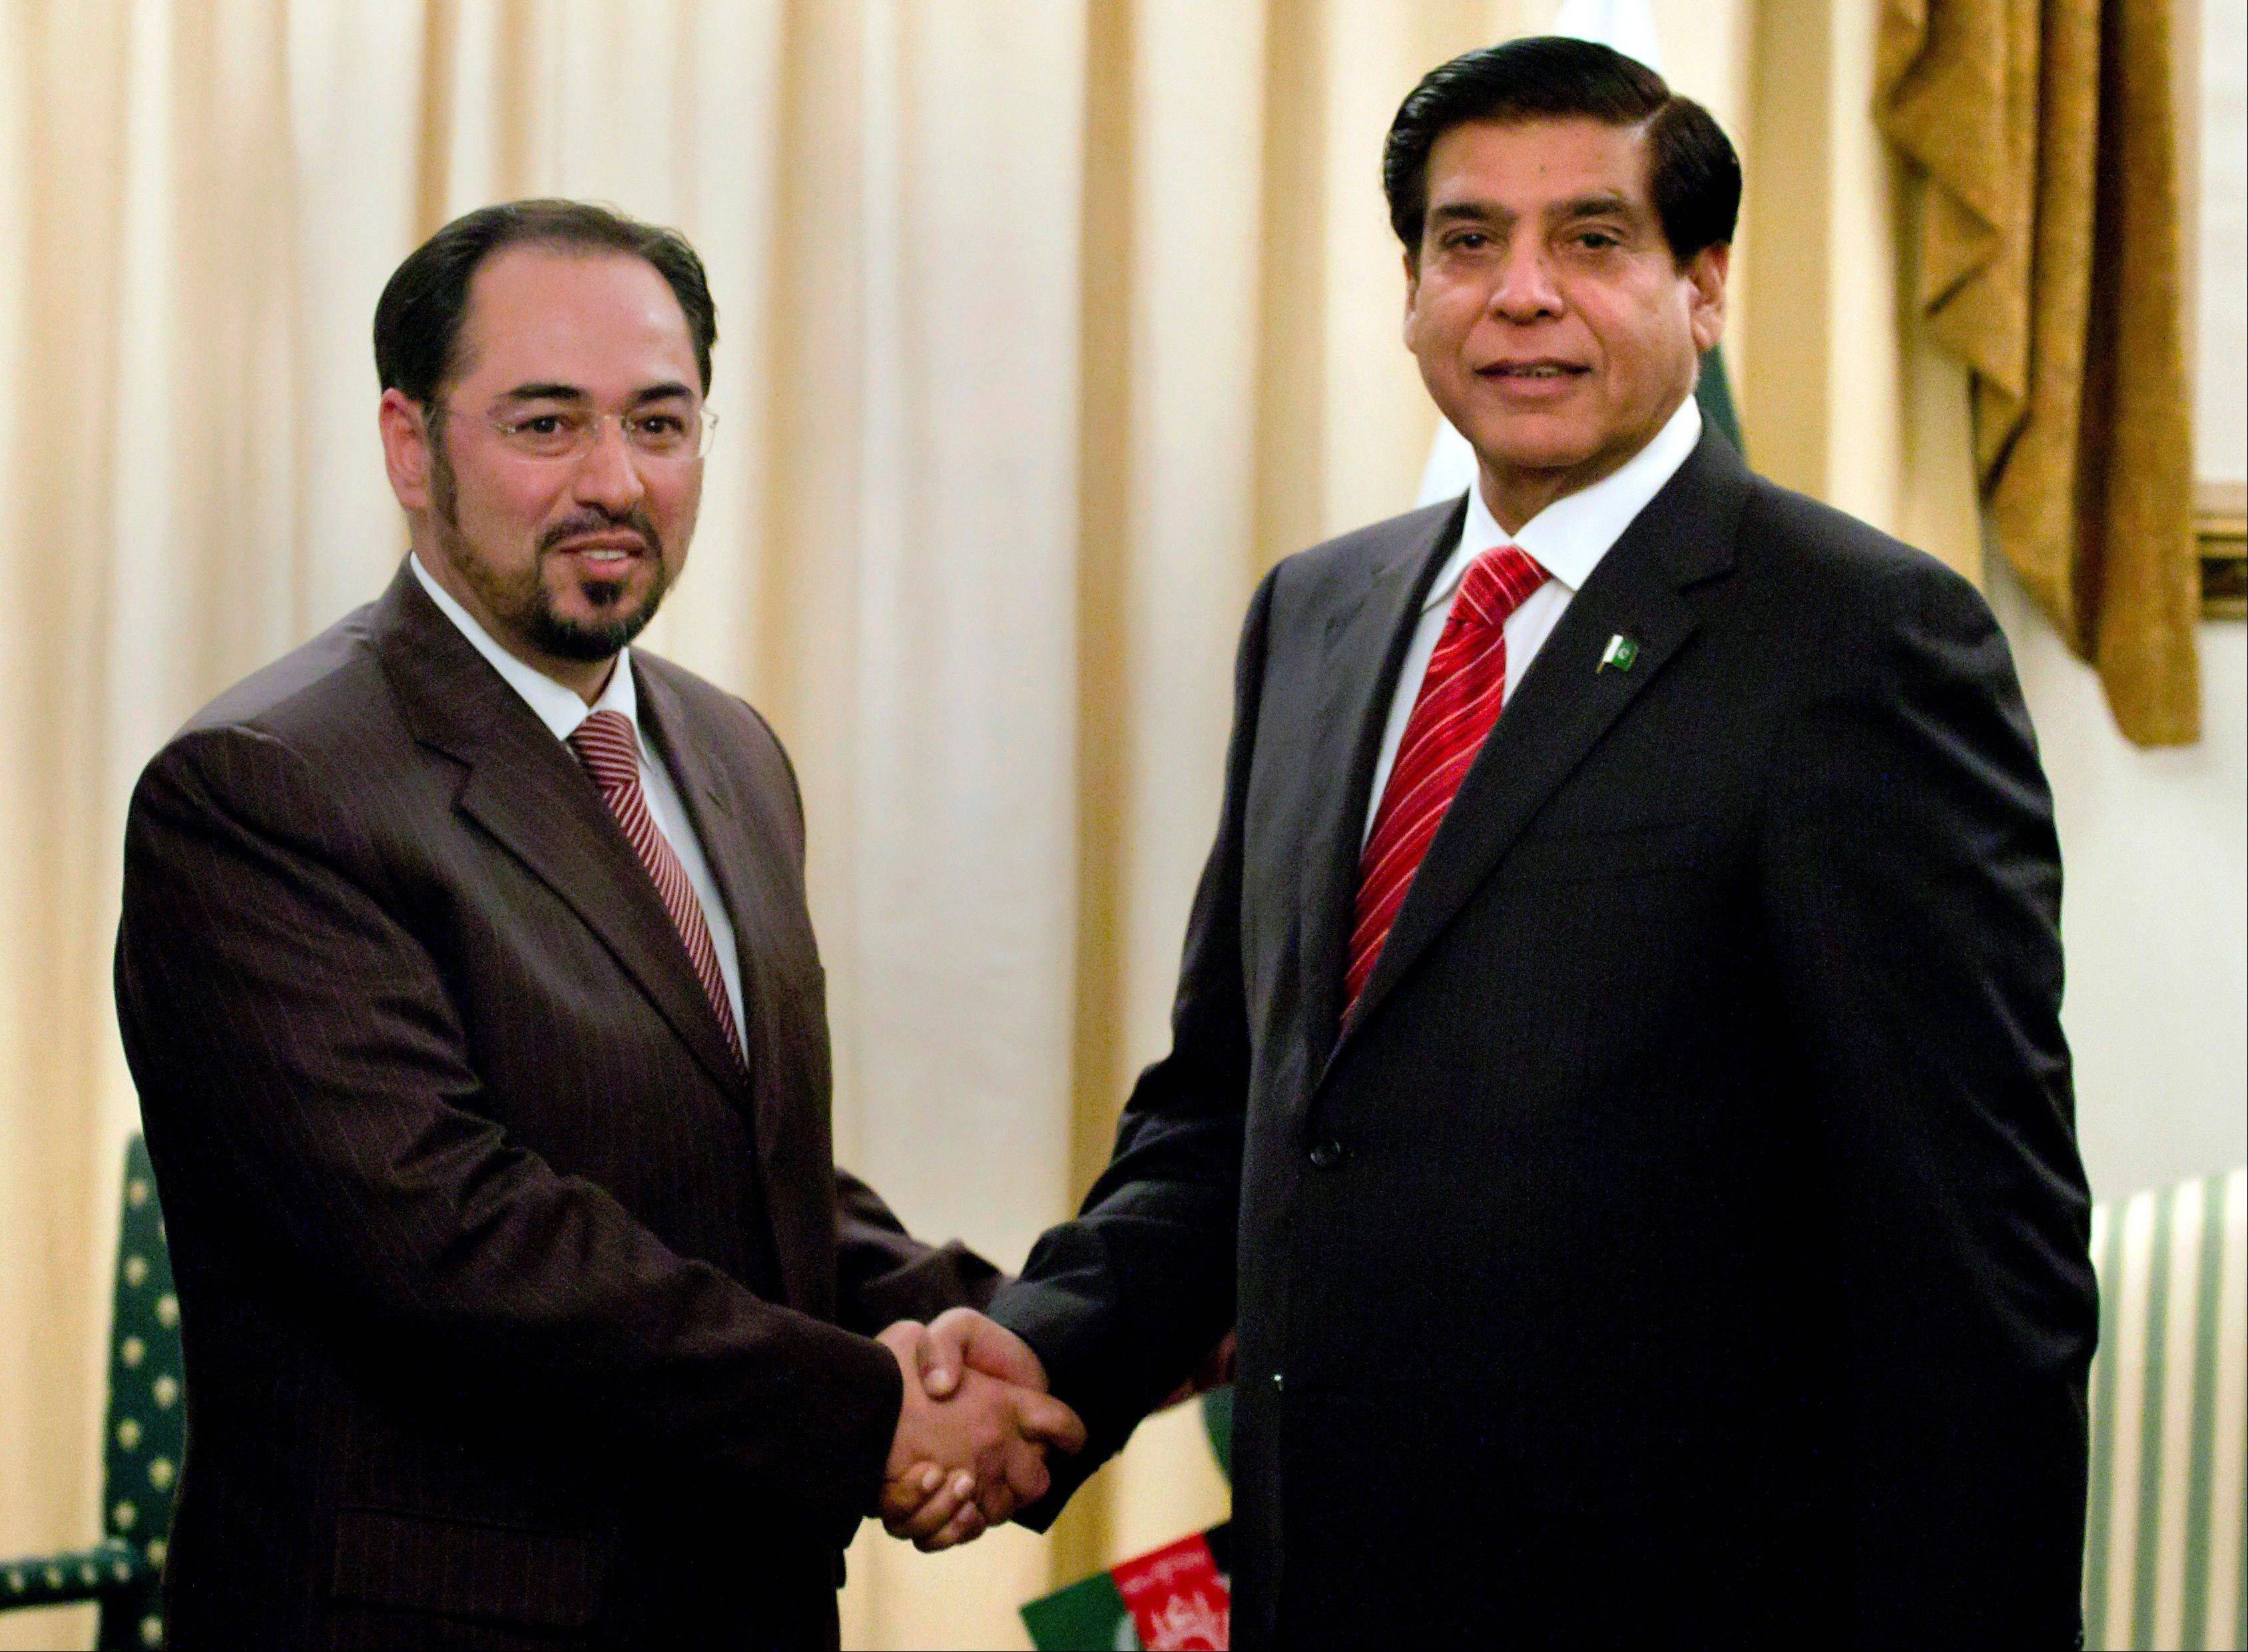 Salahuddin Rabbani, left, head of Afghanistan High Peace Council, shakes hand with Pakistan�s Prime Minister Raja Pervaiz Ashraf, for the benefit of the media prior to their meeting in Islamabad, Pakistan, Monday. They were to discuss peace and the reconciliation process in Afghanistan.